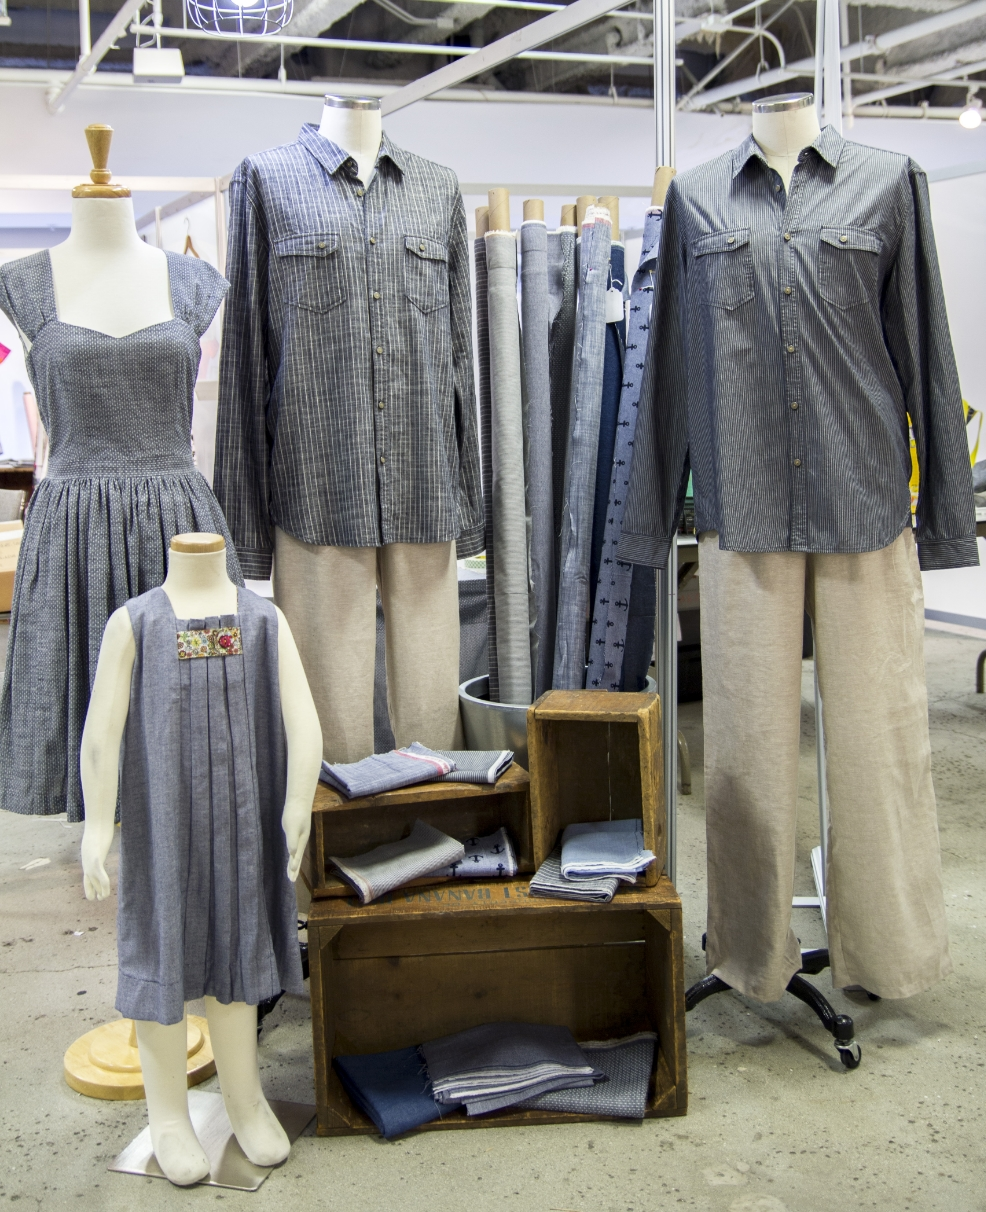 From left to right:  Cambie dress  by Sewaholic (Chambray Union),  Birthday Party dress  by Oliver + S (Chambray Union and London calling),  Traveler Shirts by Jacob Davis  (Railroad Denim).